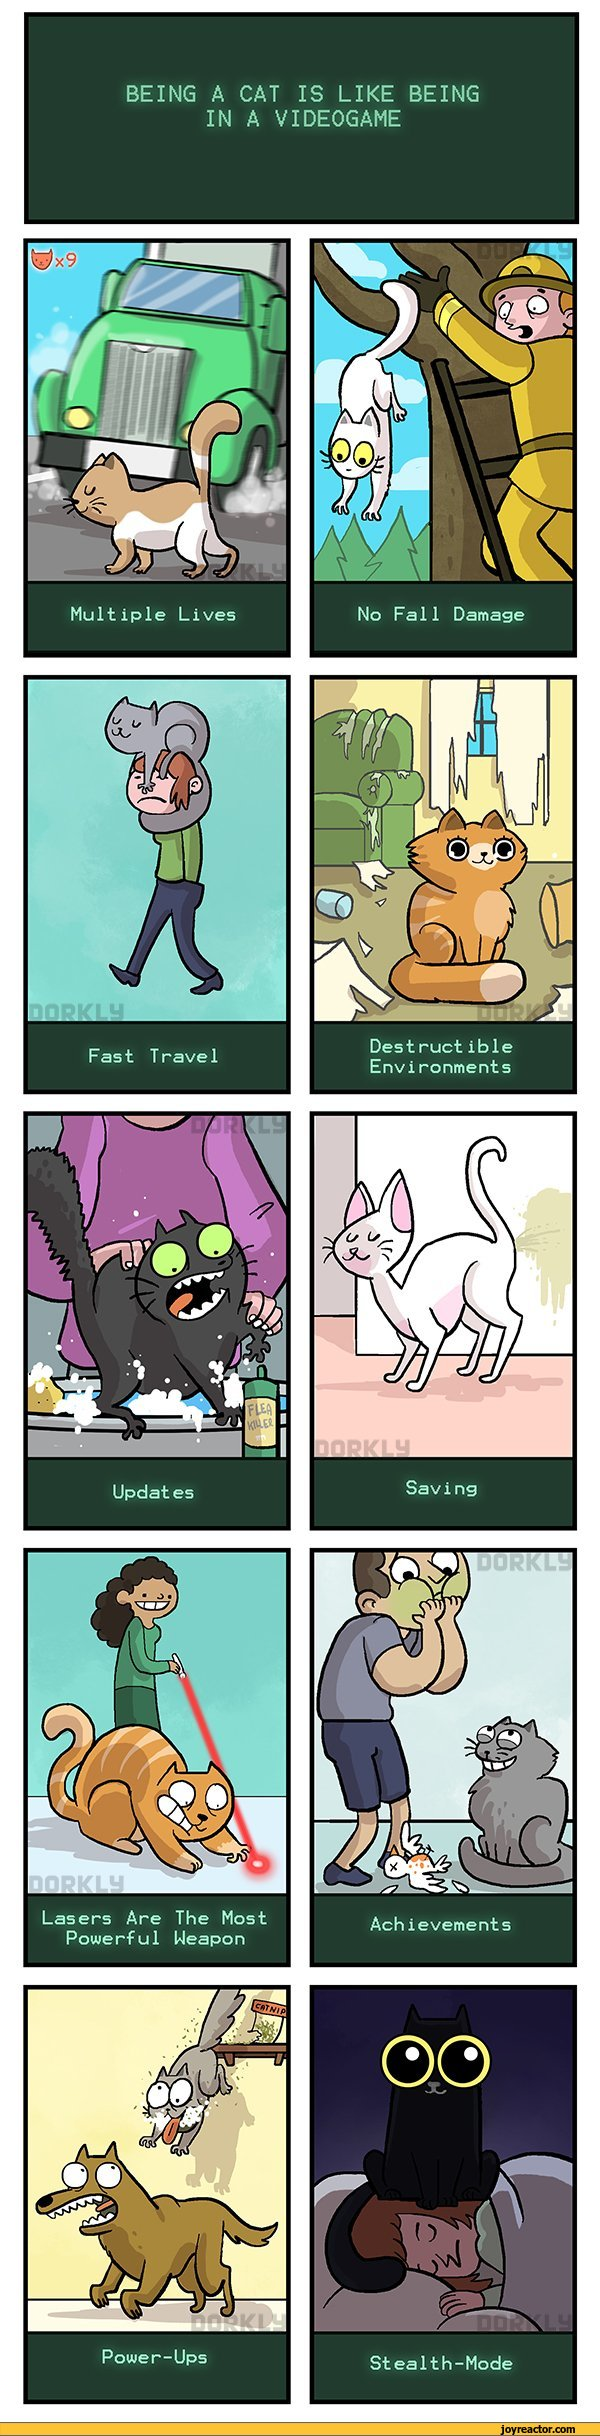 comics-cats-games-dorkly-763971.jpeg